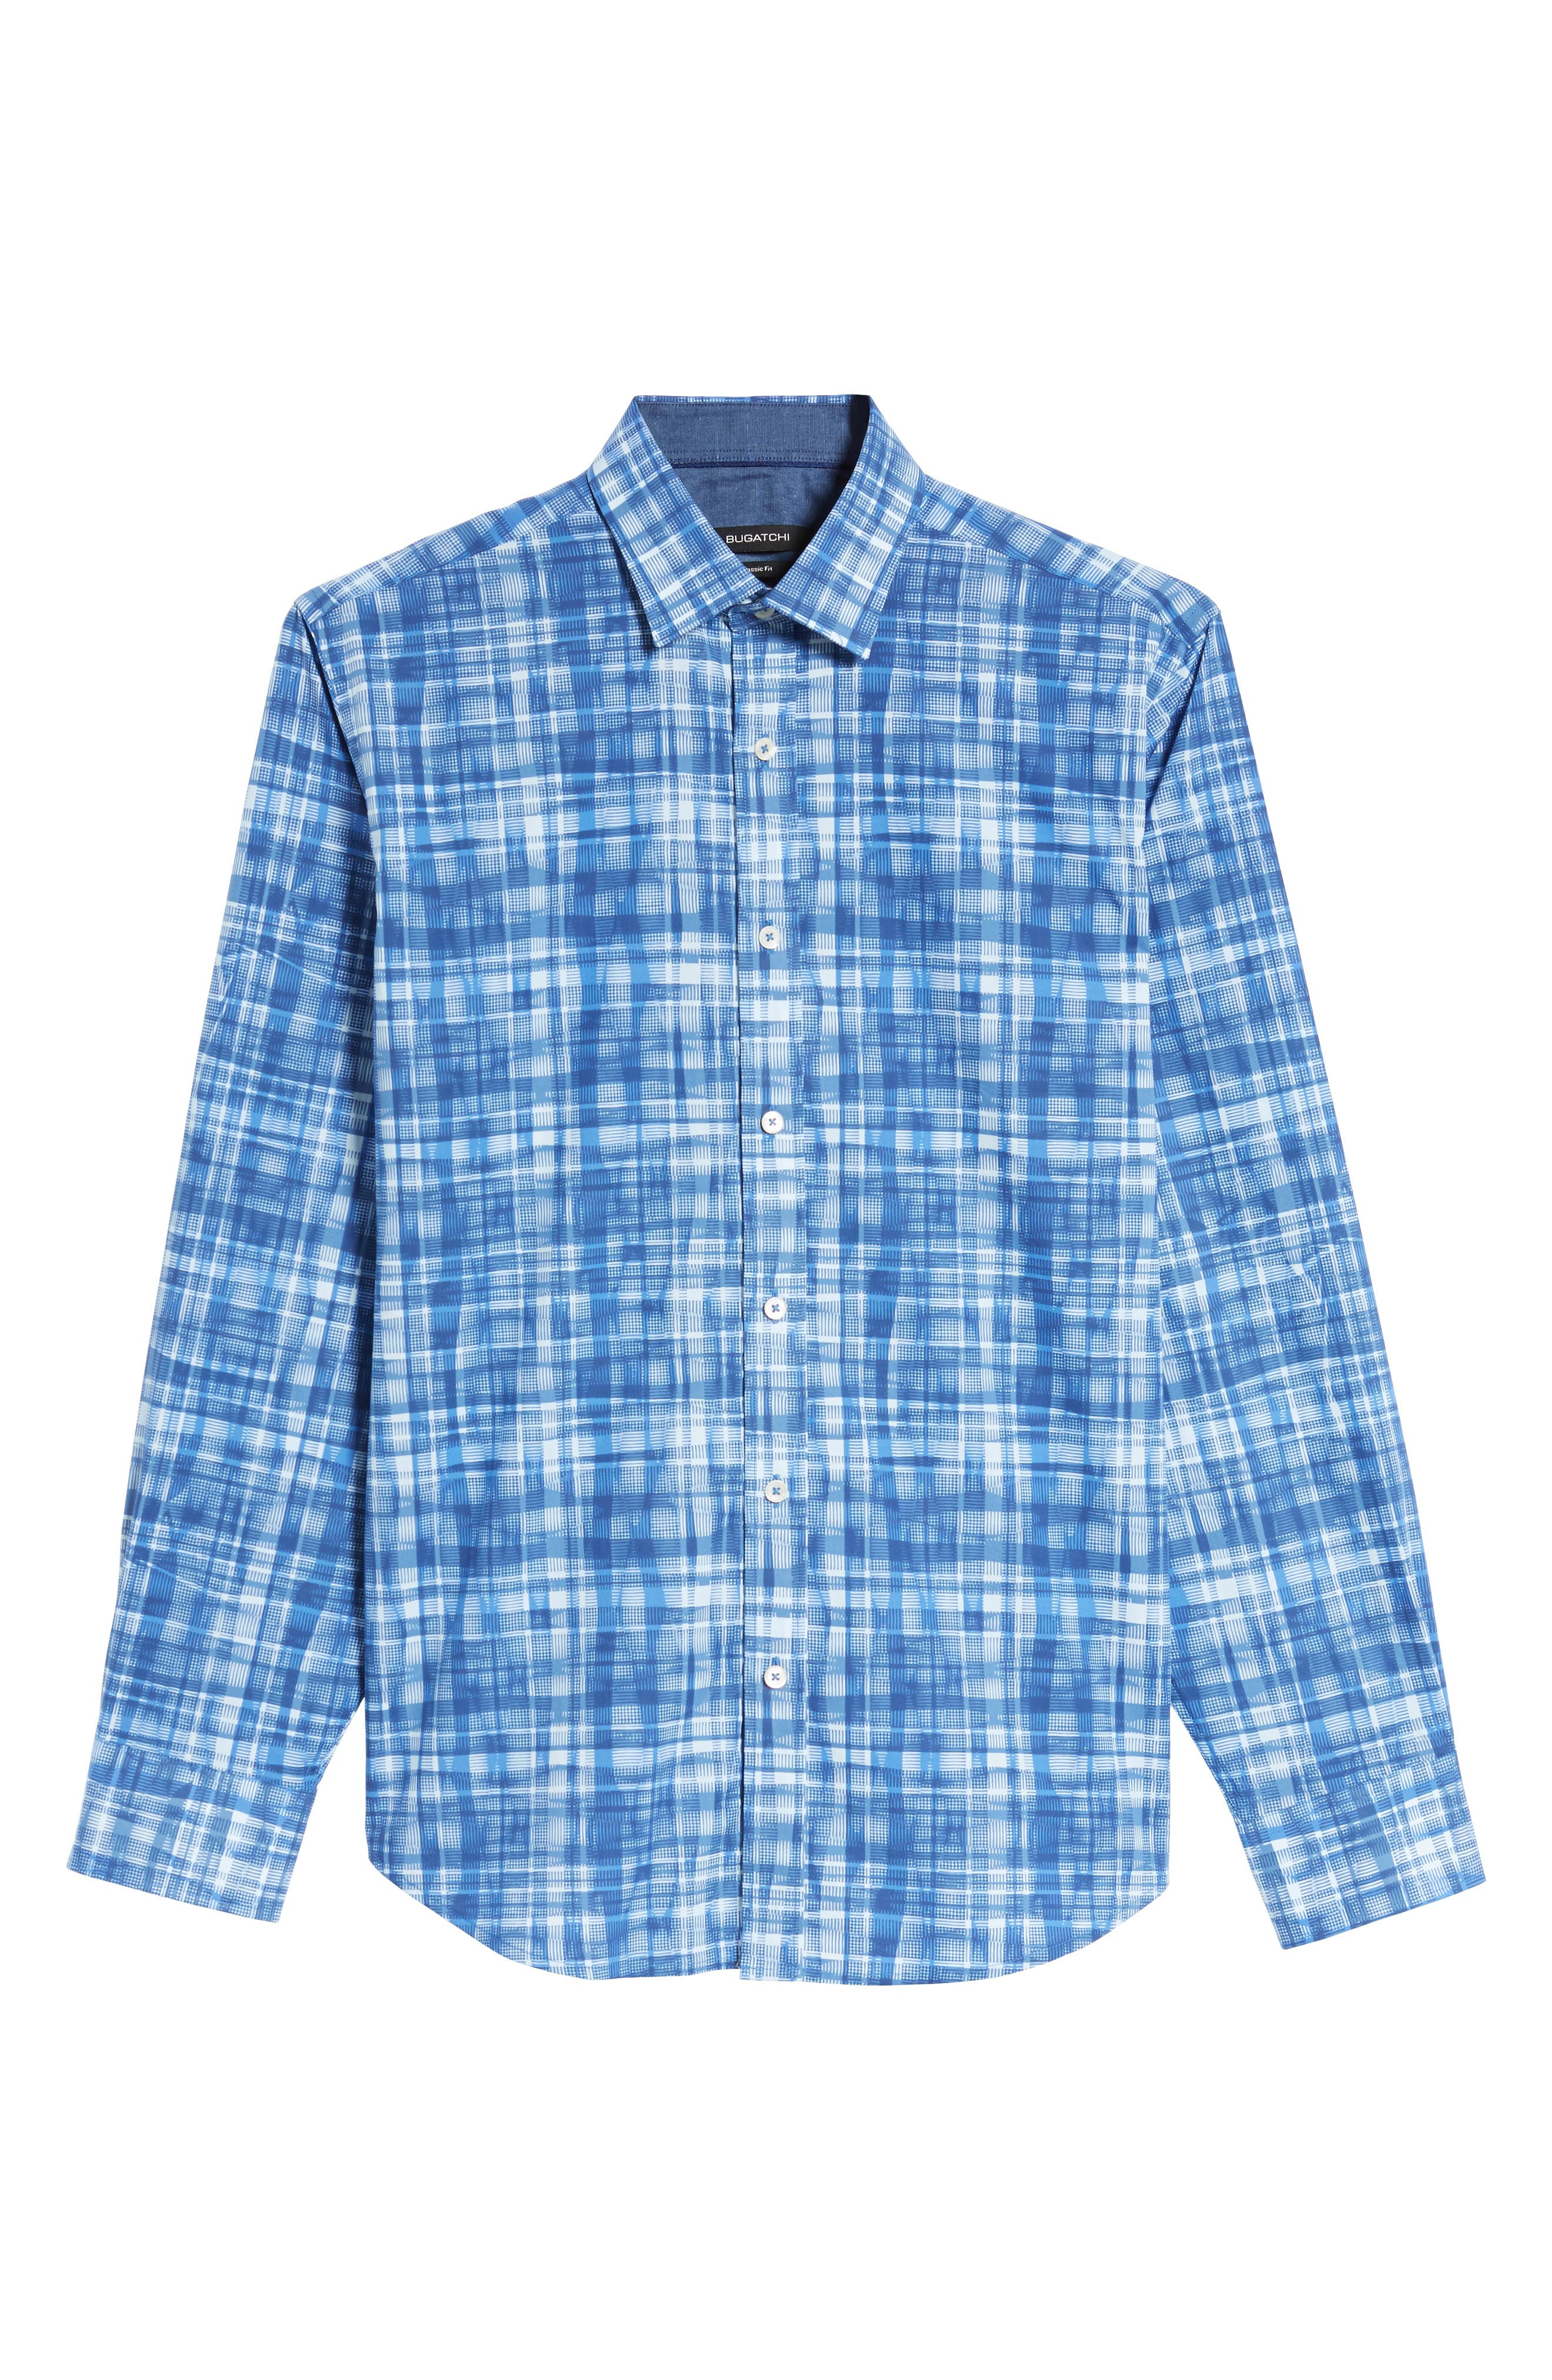 Classic Fit Abstract Plaid Sport Shirt,                             Alternate thumbnail 6, color,                             422